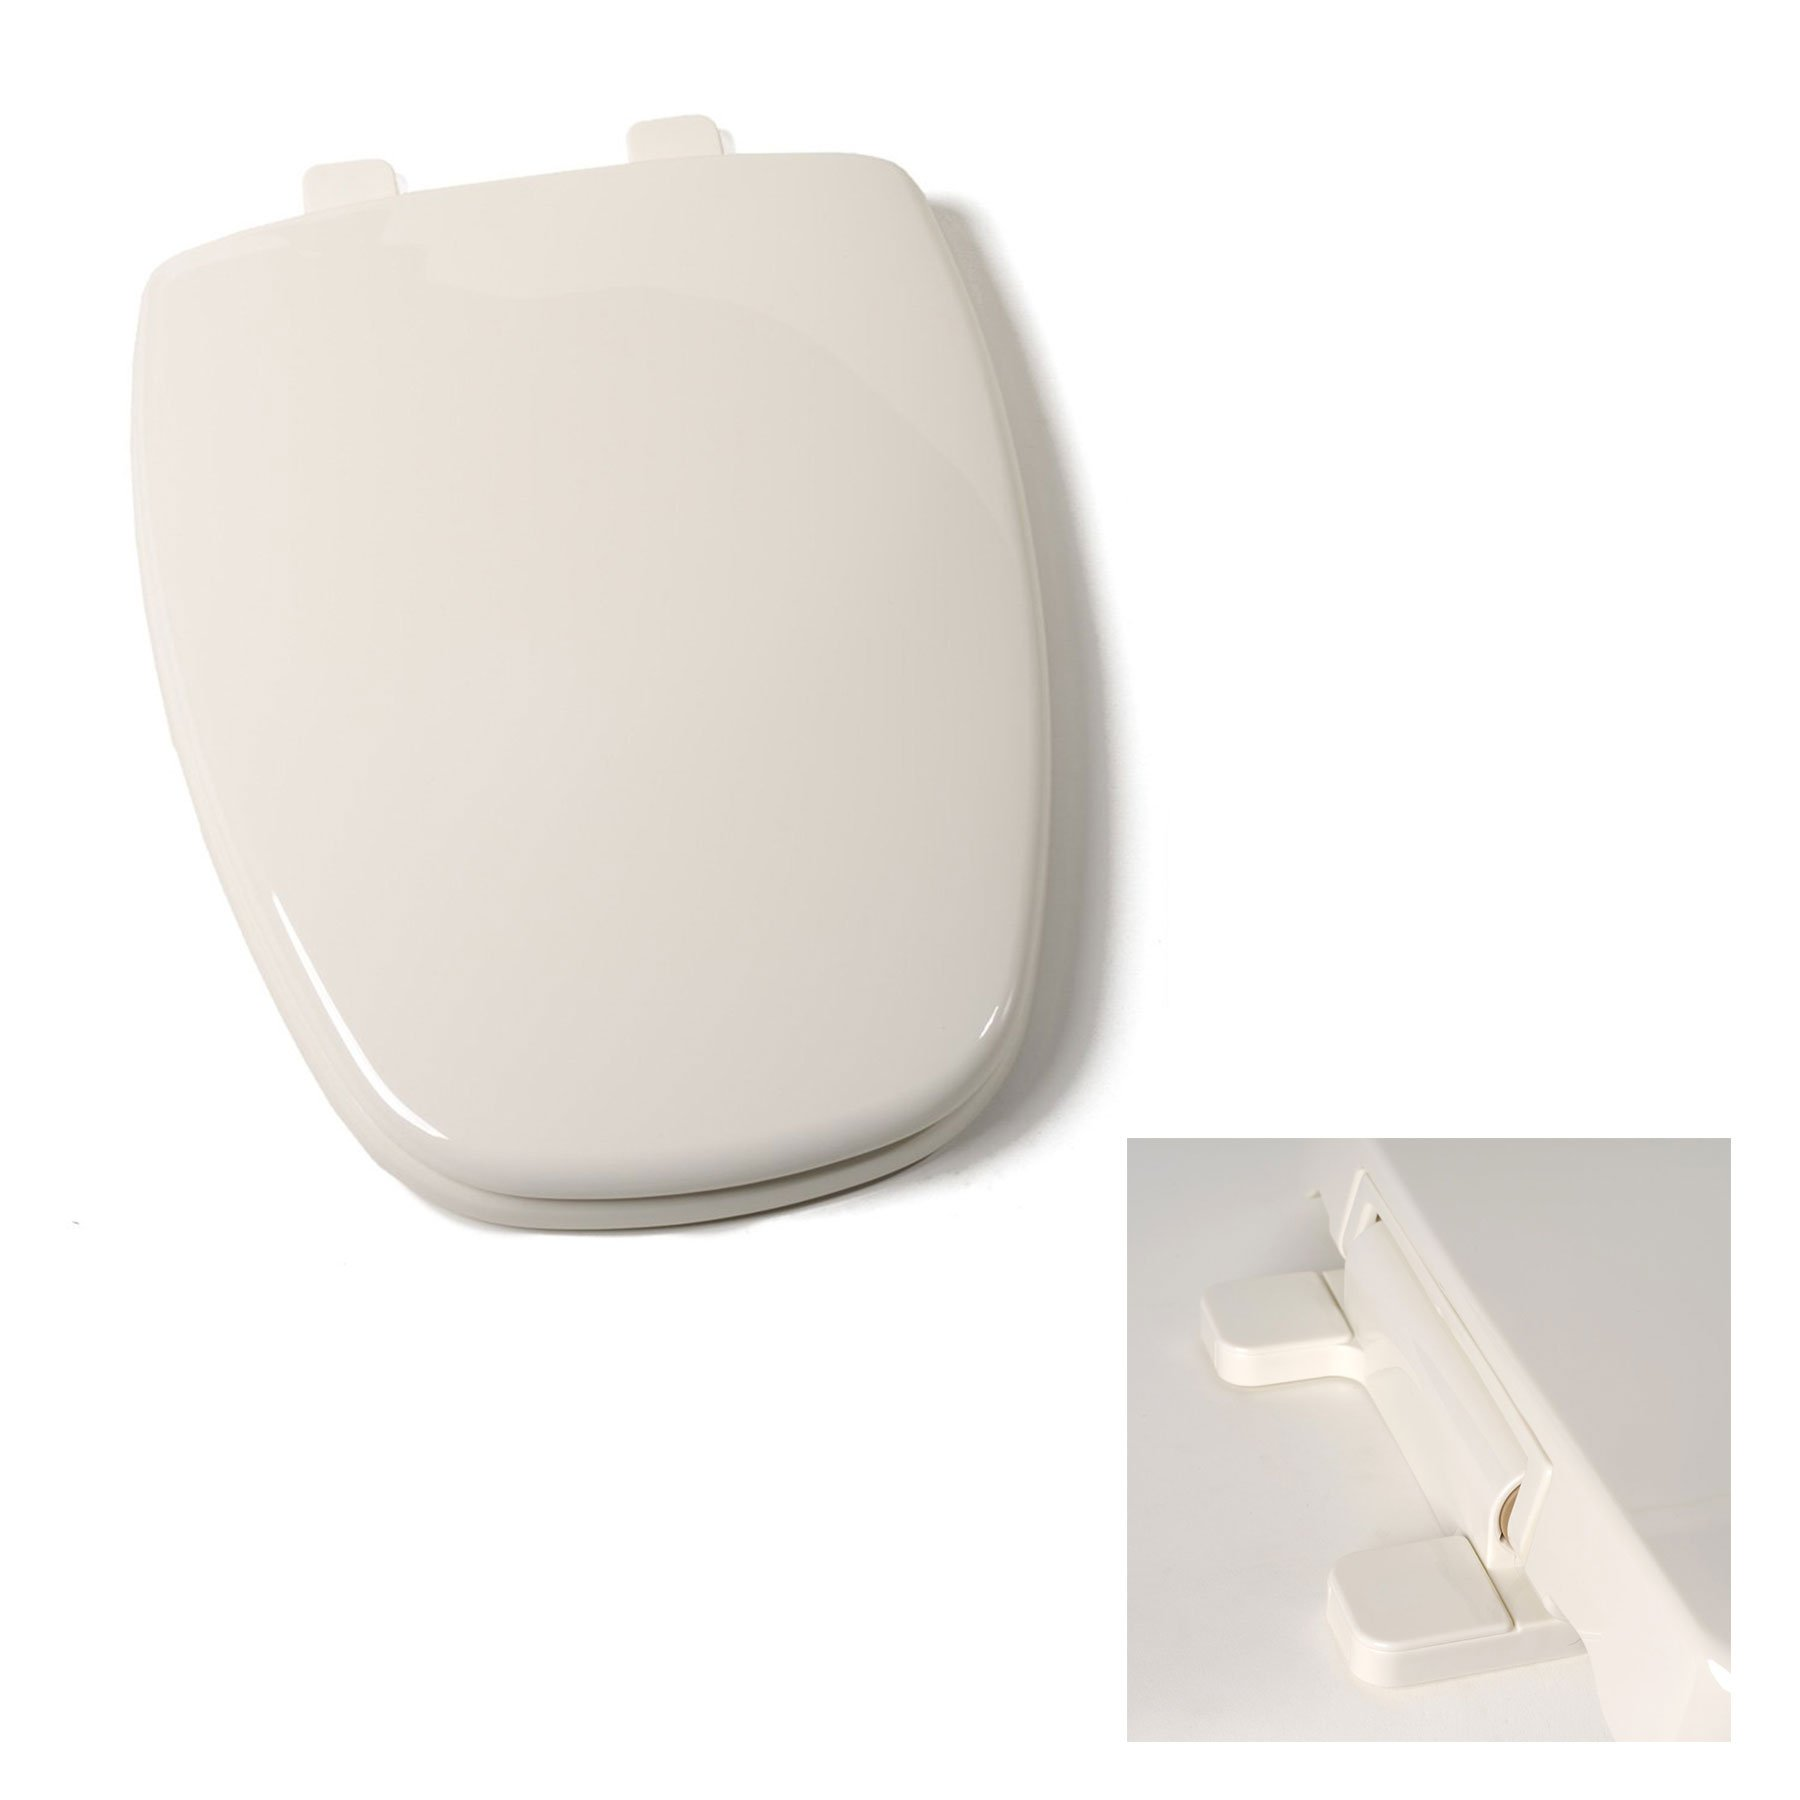 Deluxe Plastic Square Slow-Close Bone Elongated Toilet Seat for Eljer Toilets